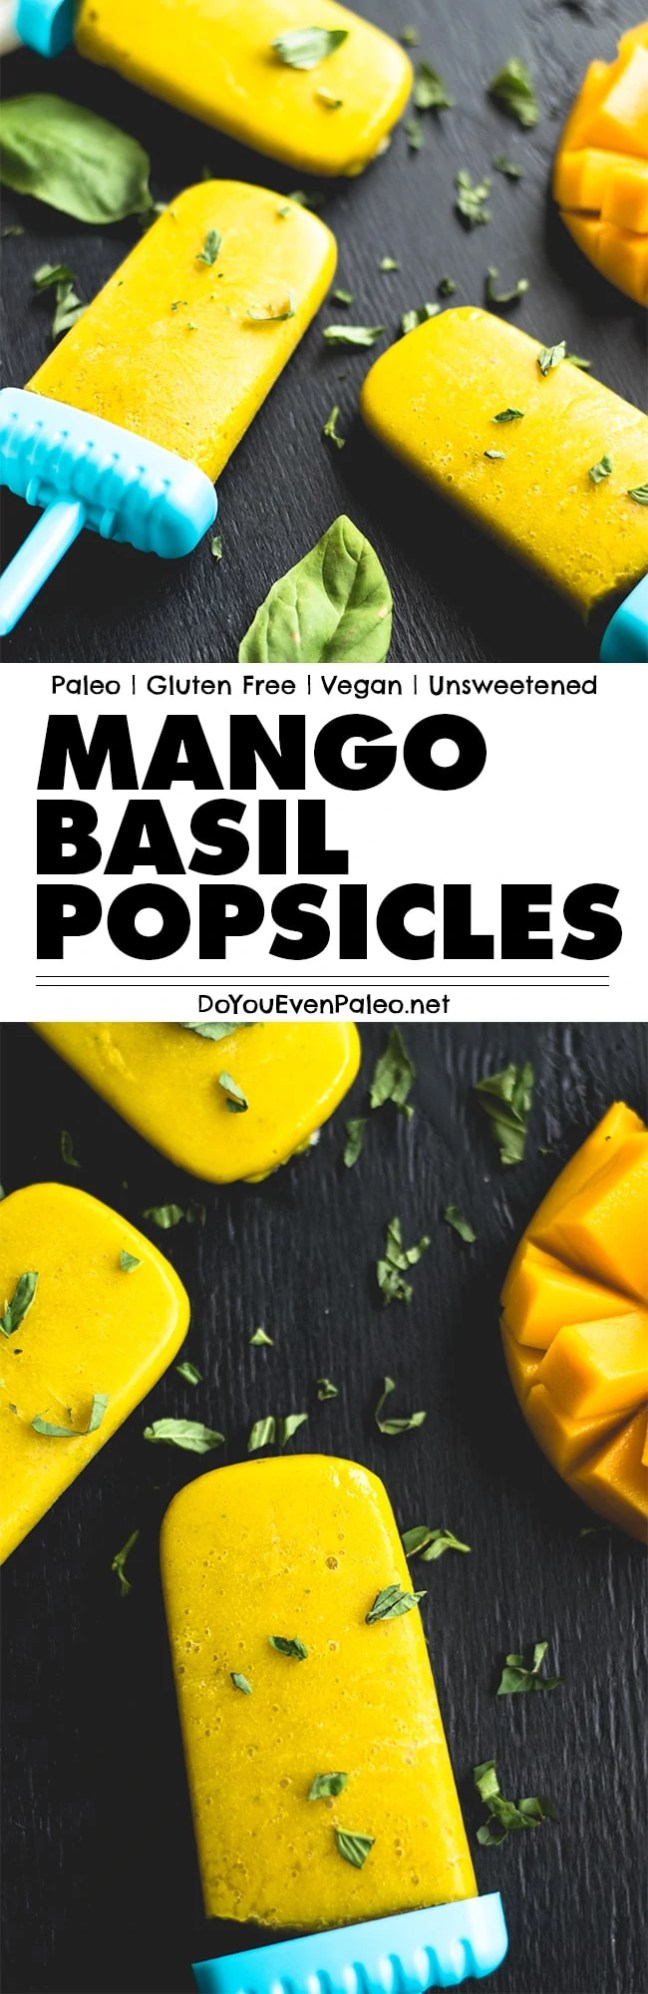 Mango Basil Popsicles: the taste of summer in a sugar free frozen treat! These easy pops are gluten free, paleo, Whole30-friendly, and vegan. | DoYouEvenPaleo.net